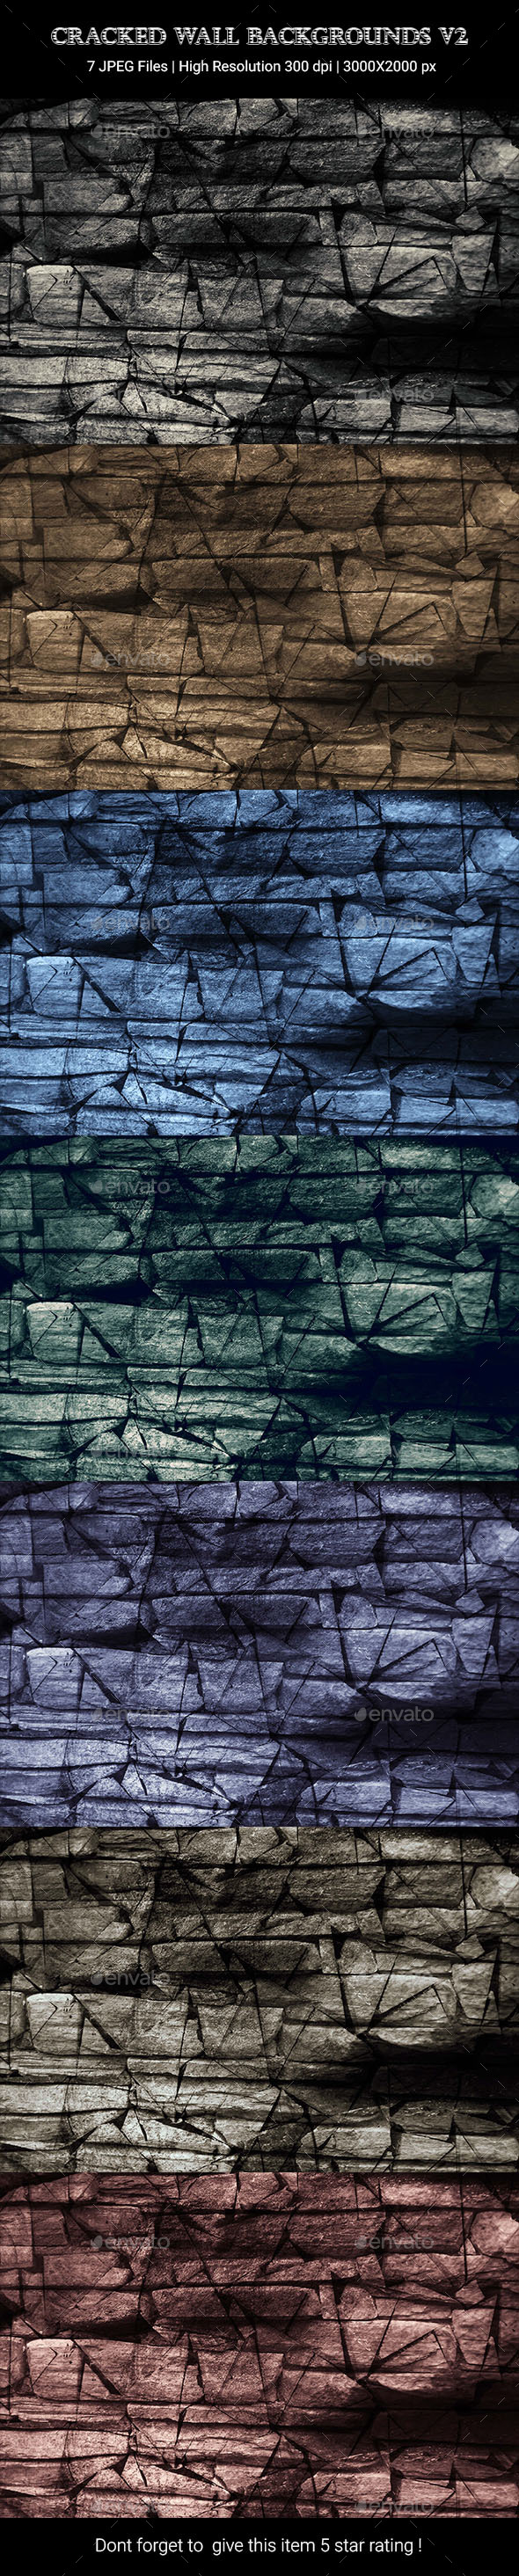 Cracked Wall Backgrounds v2